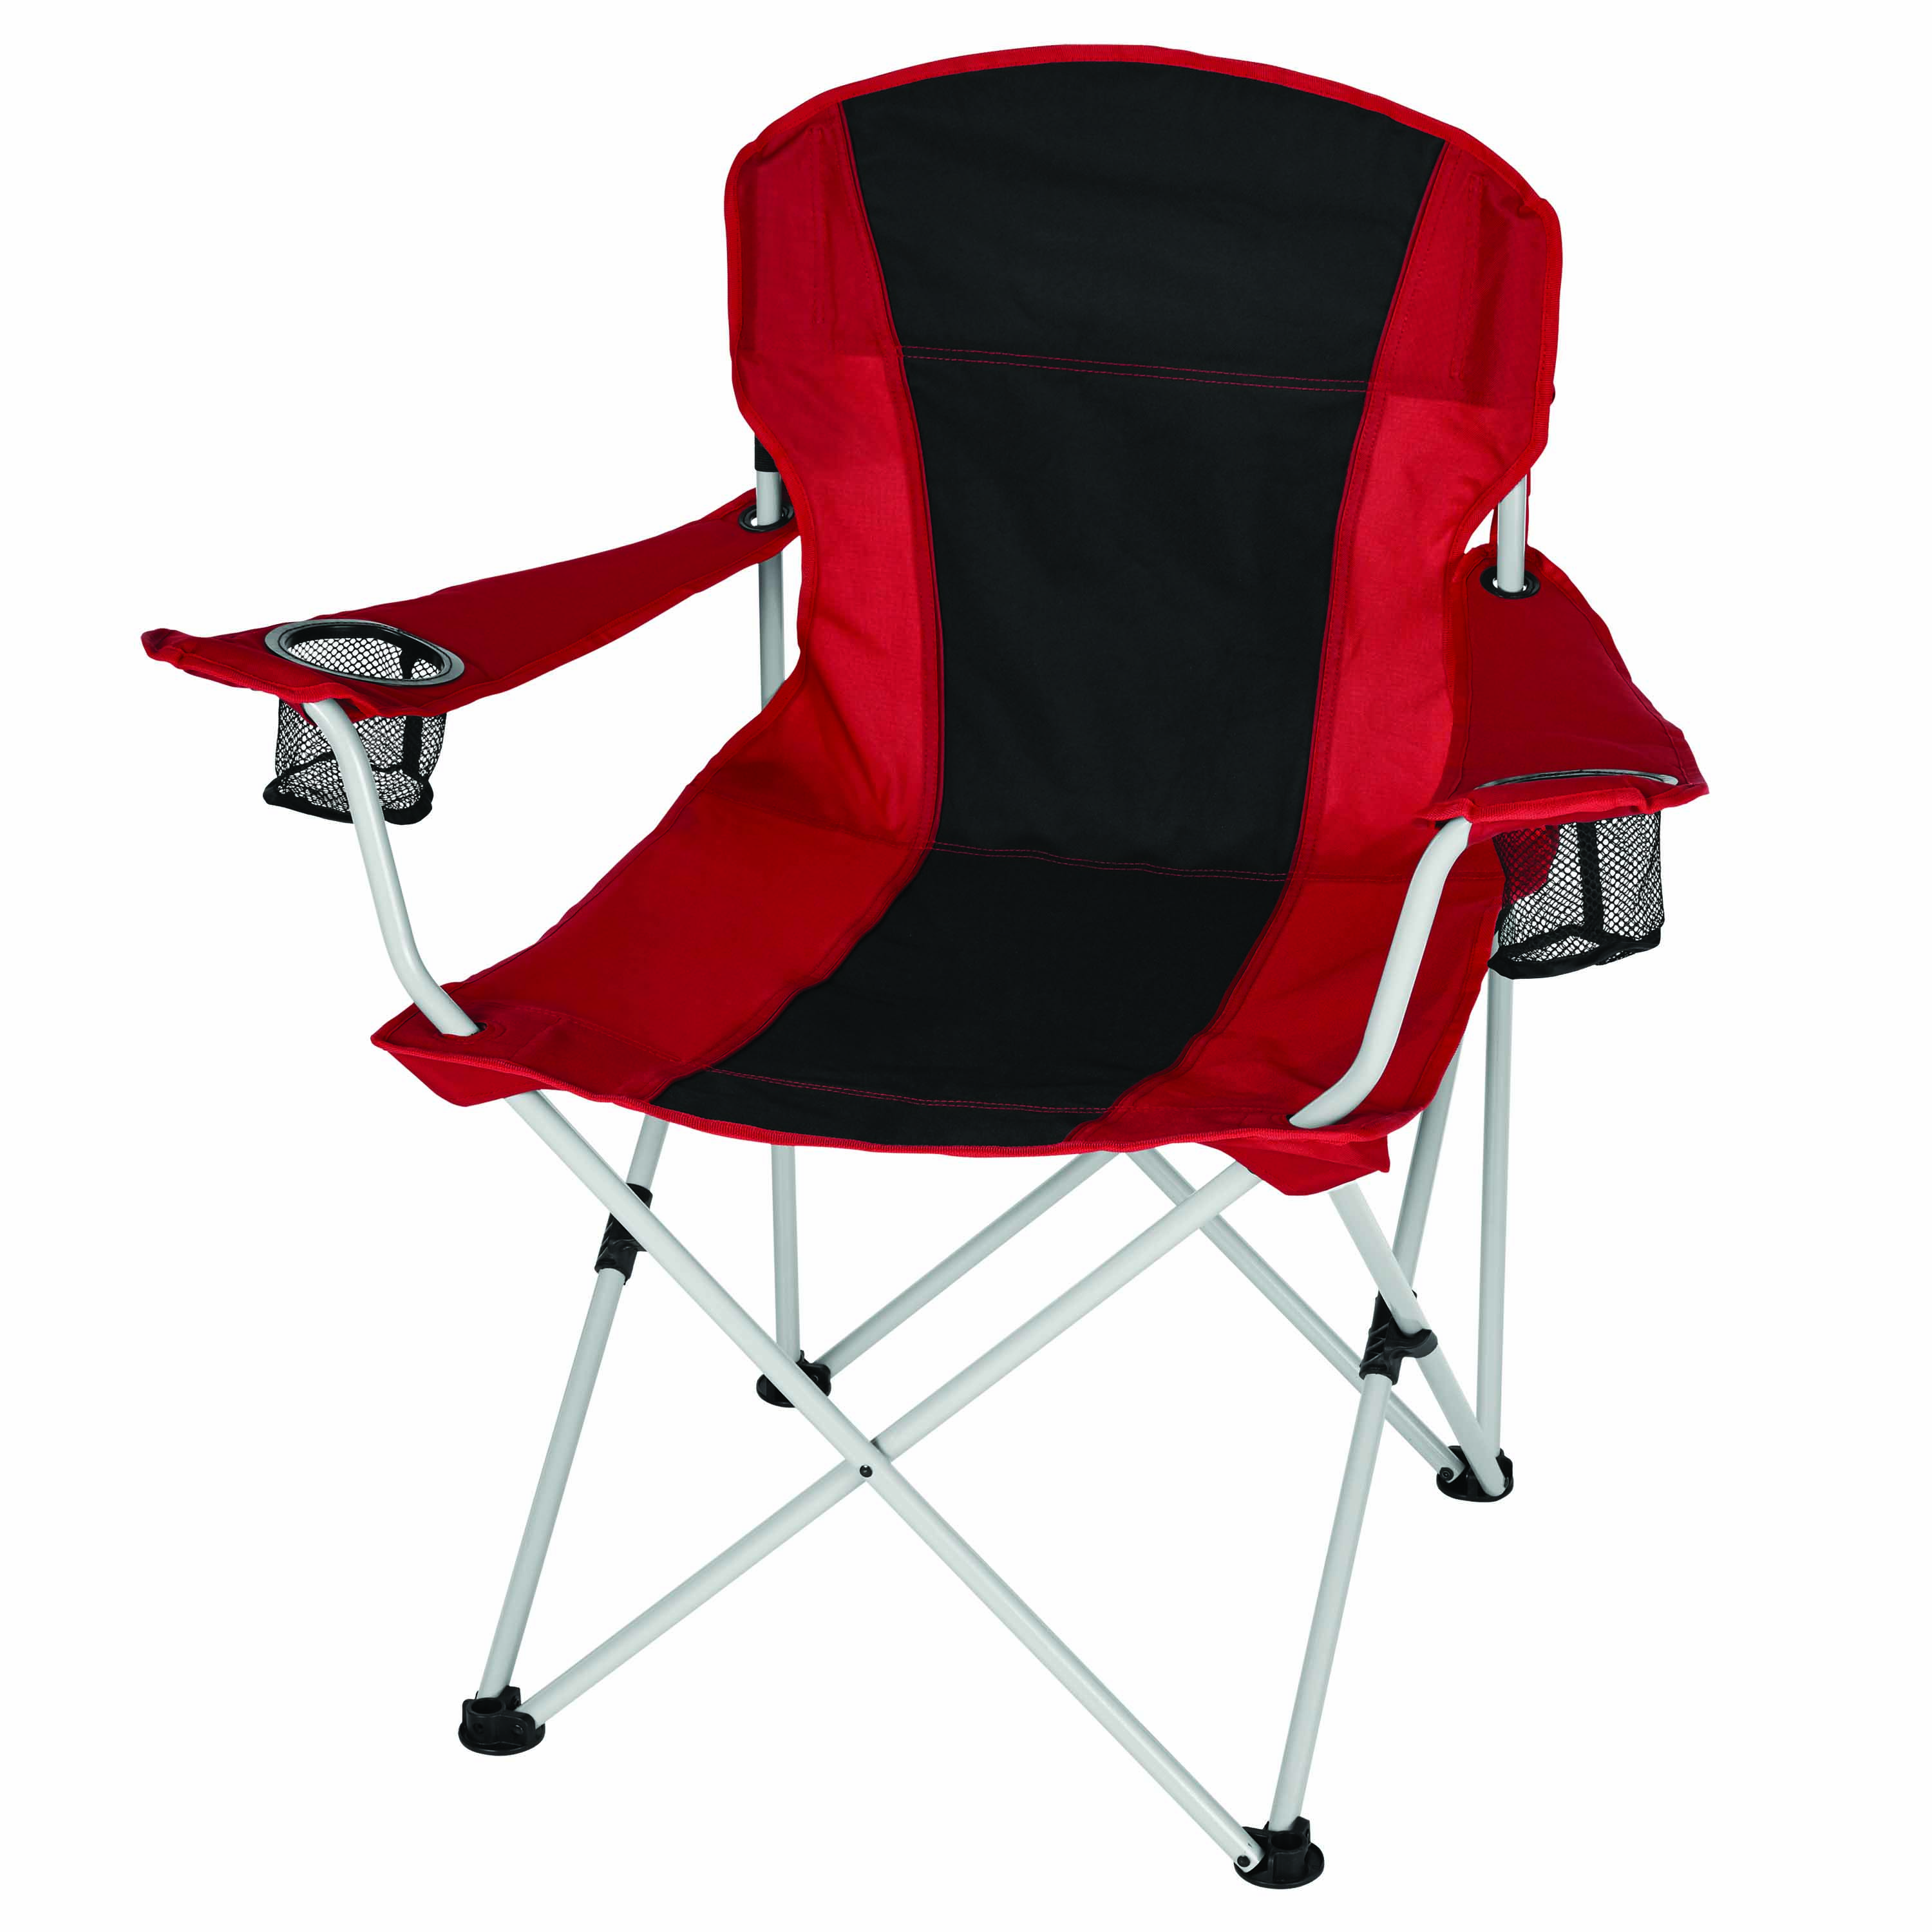 lewis and clark camping chairs babies r us canada high chair ozark trail oversized with cup holders quick pack strap